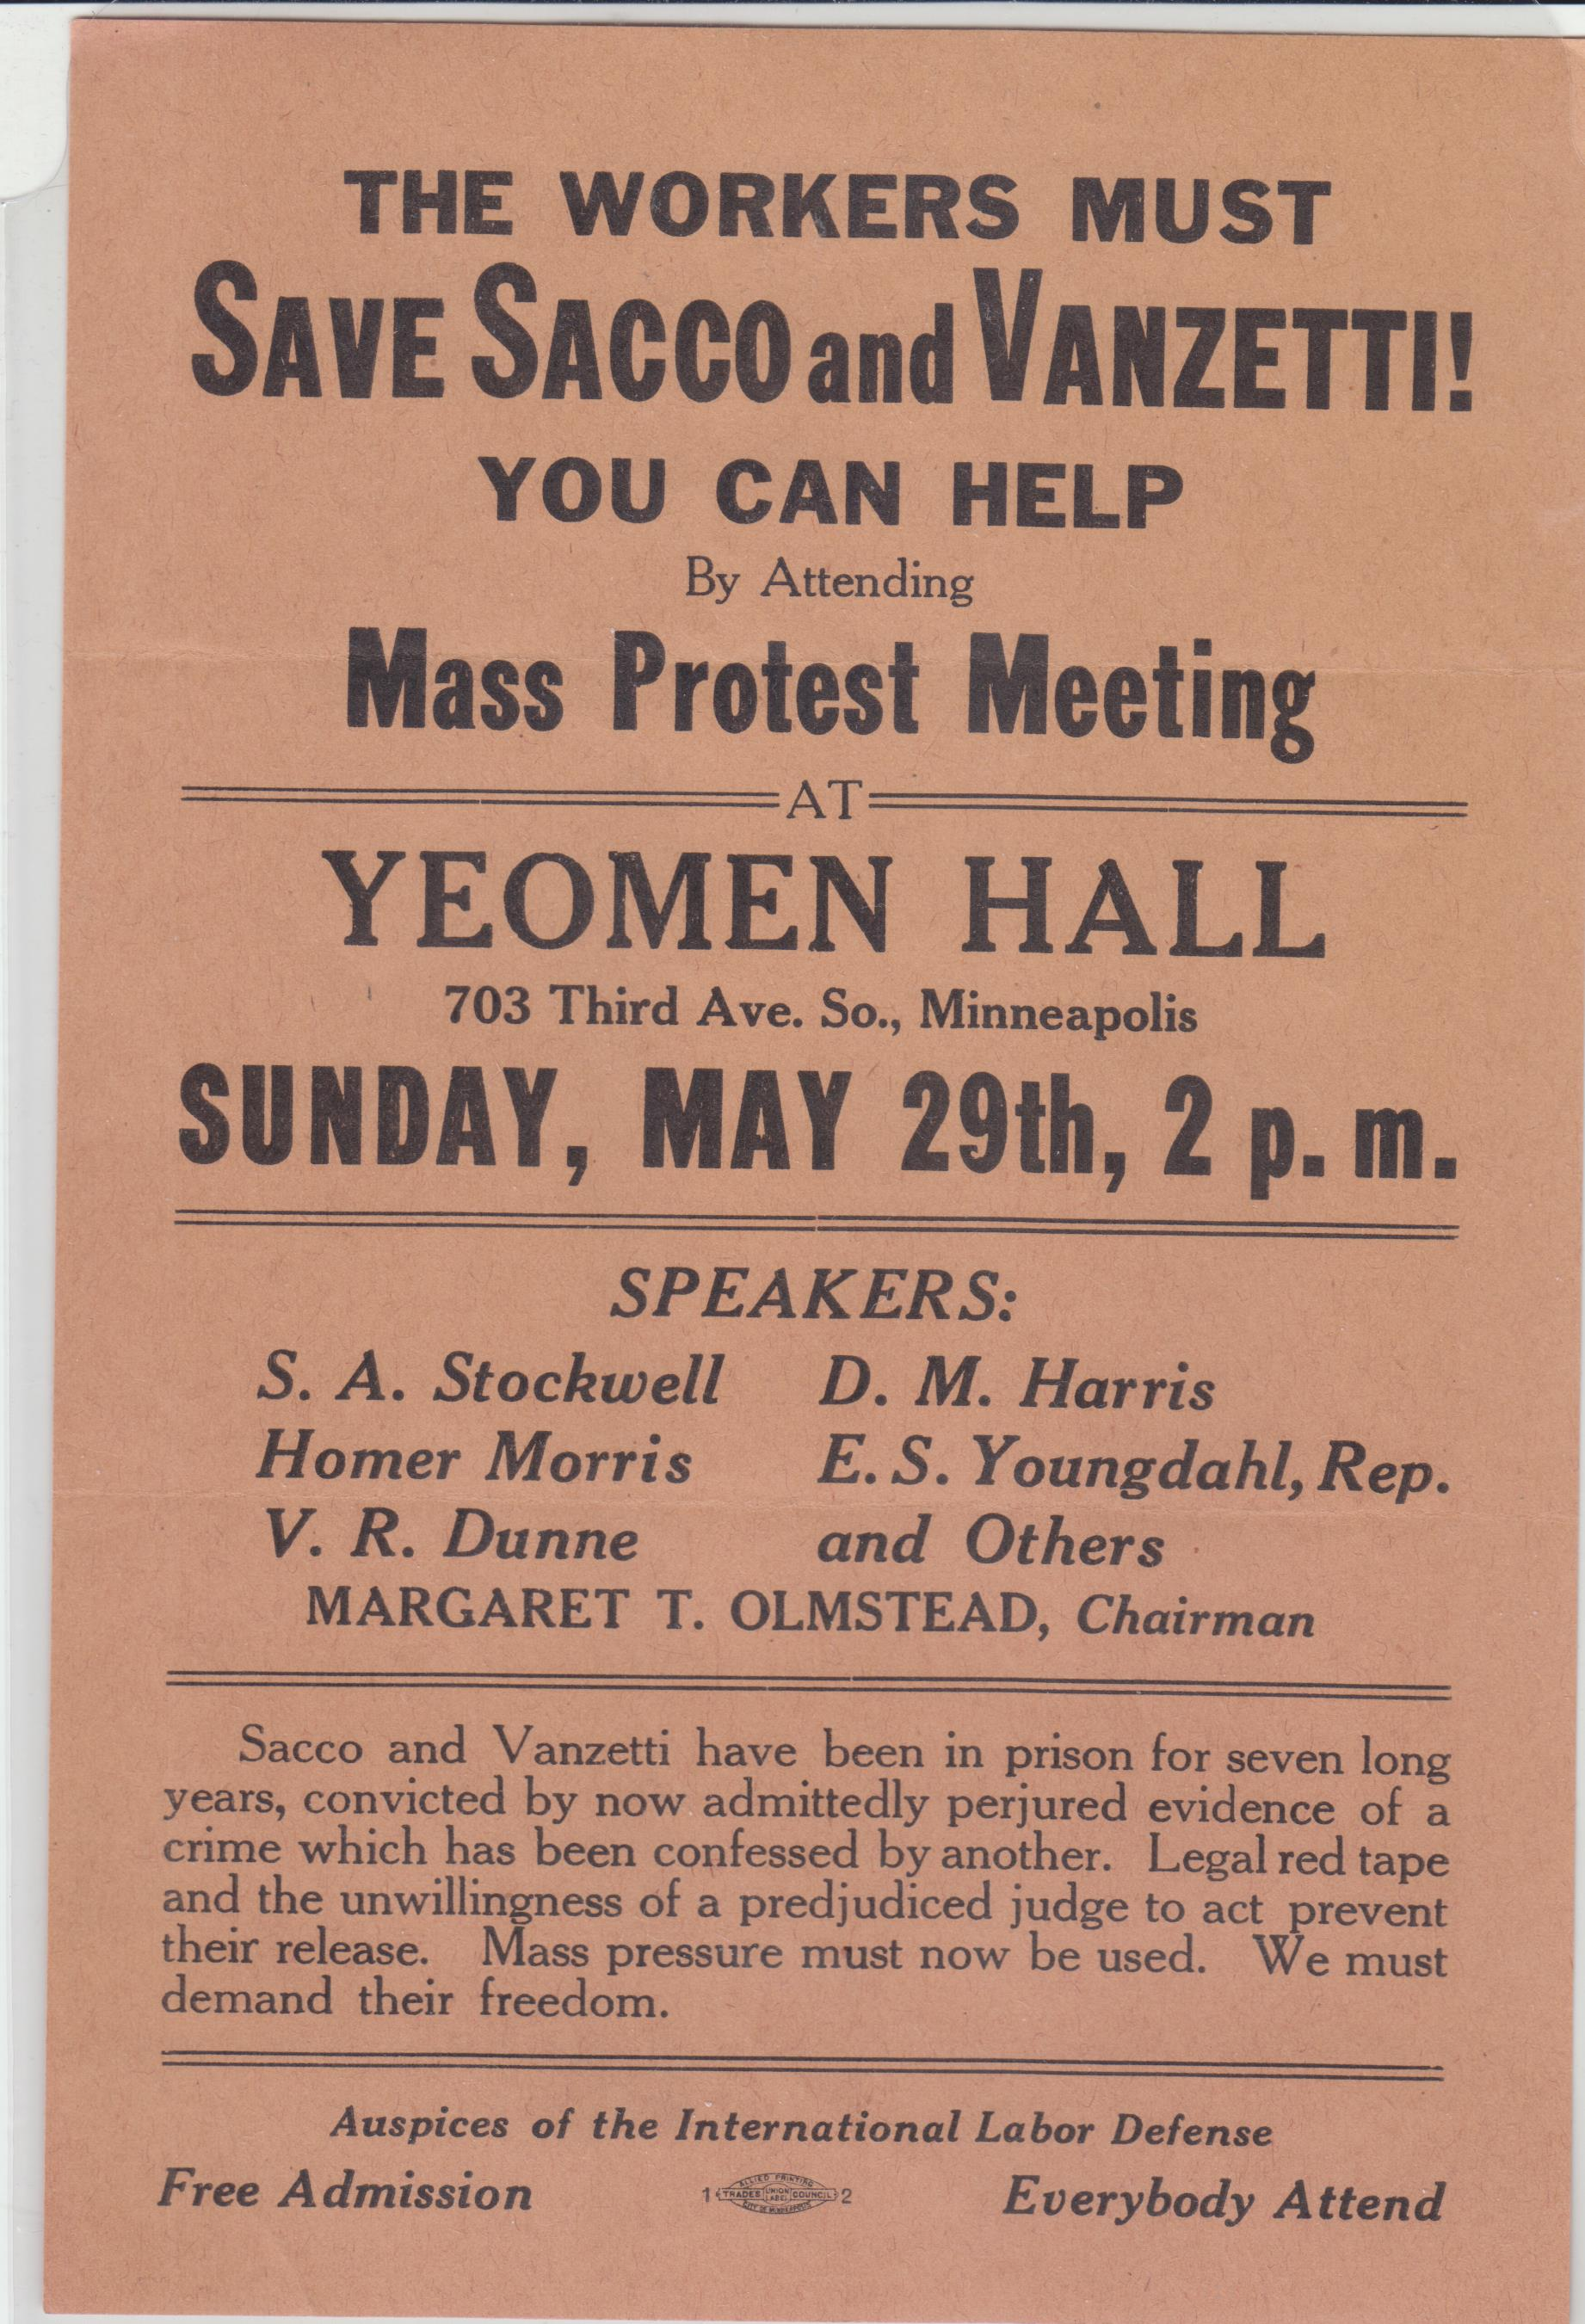 Image for The Workers Must Save Sacco and Vanzetti. You Can Help by Attending Mass Protest Meeting